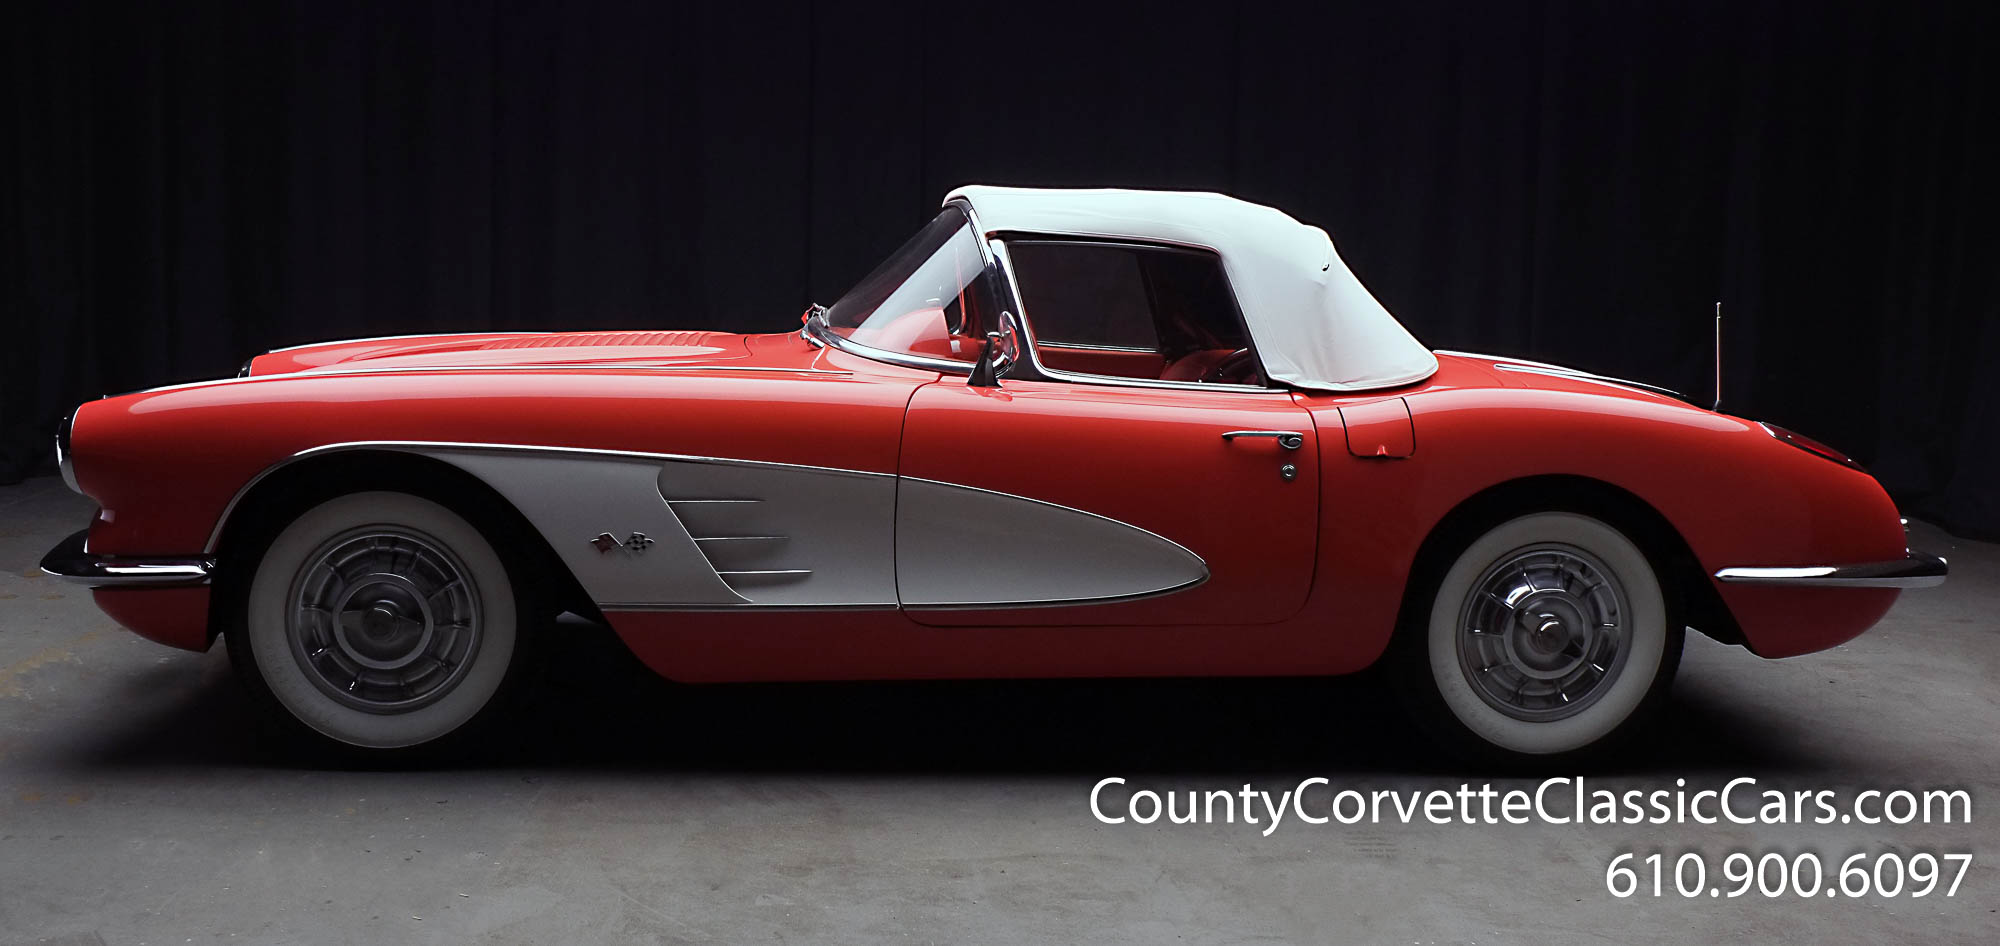 1958-Corvette-Convertible (19 of 62).jpg